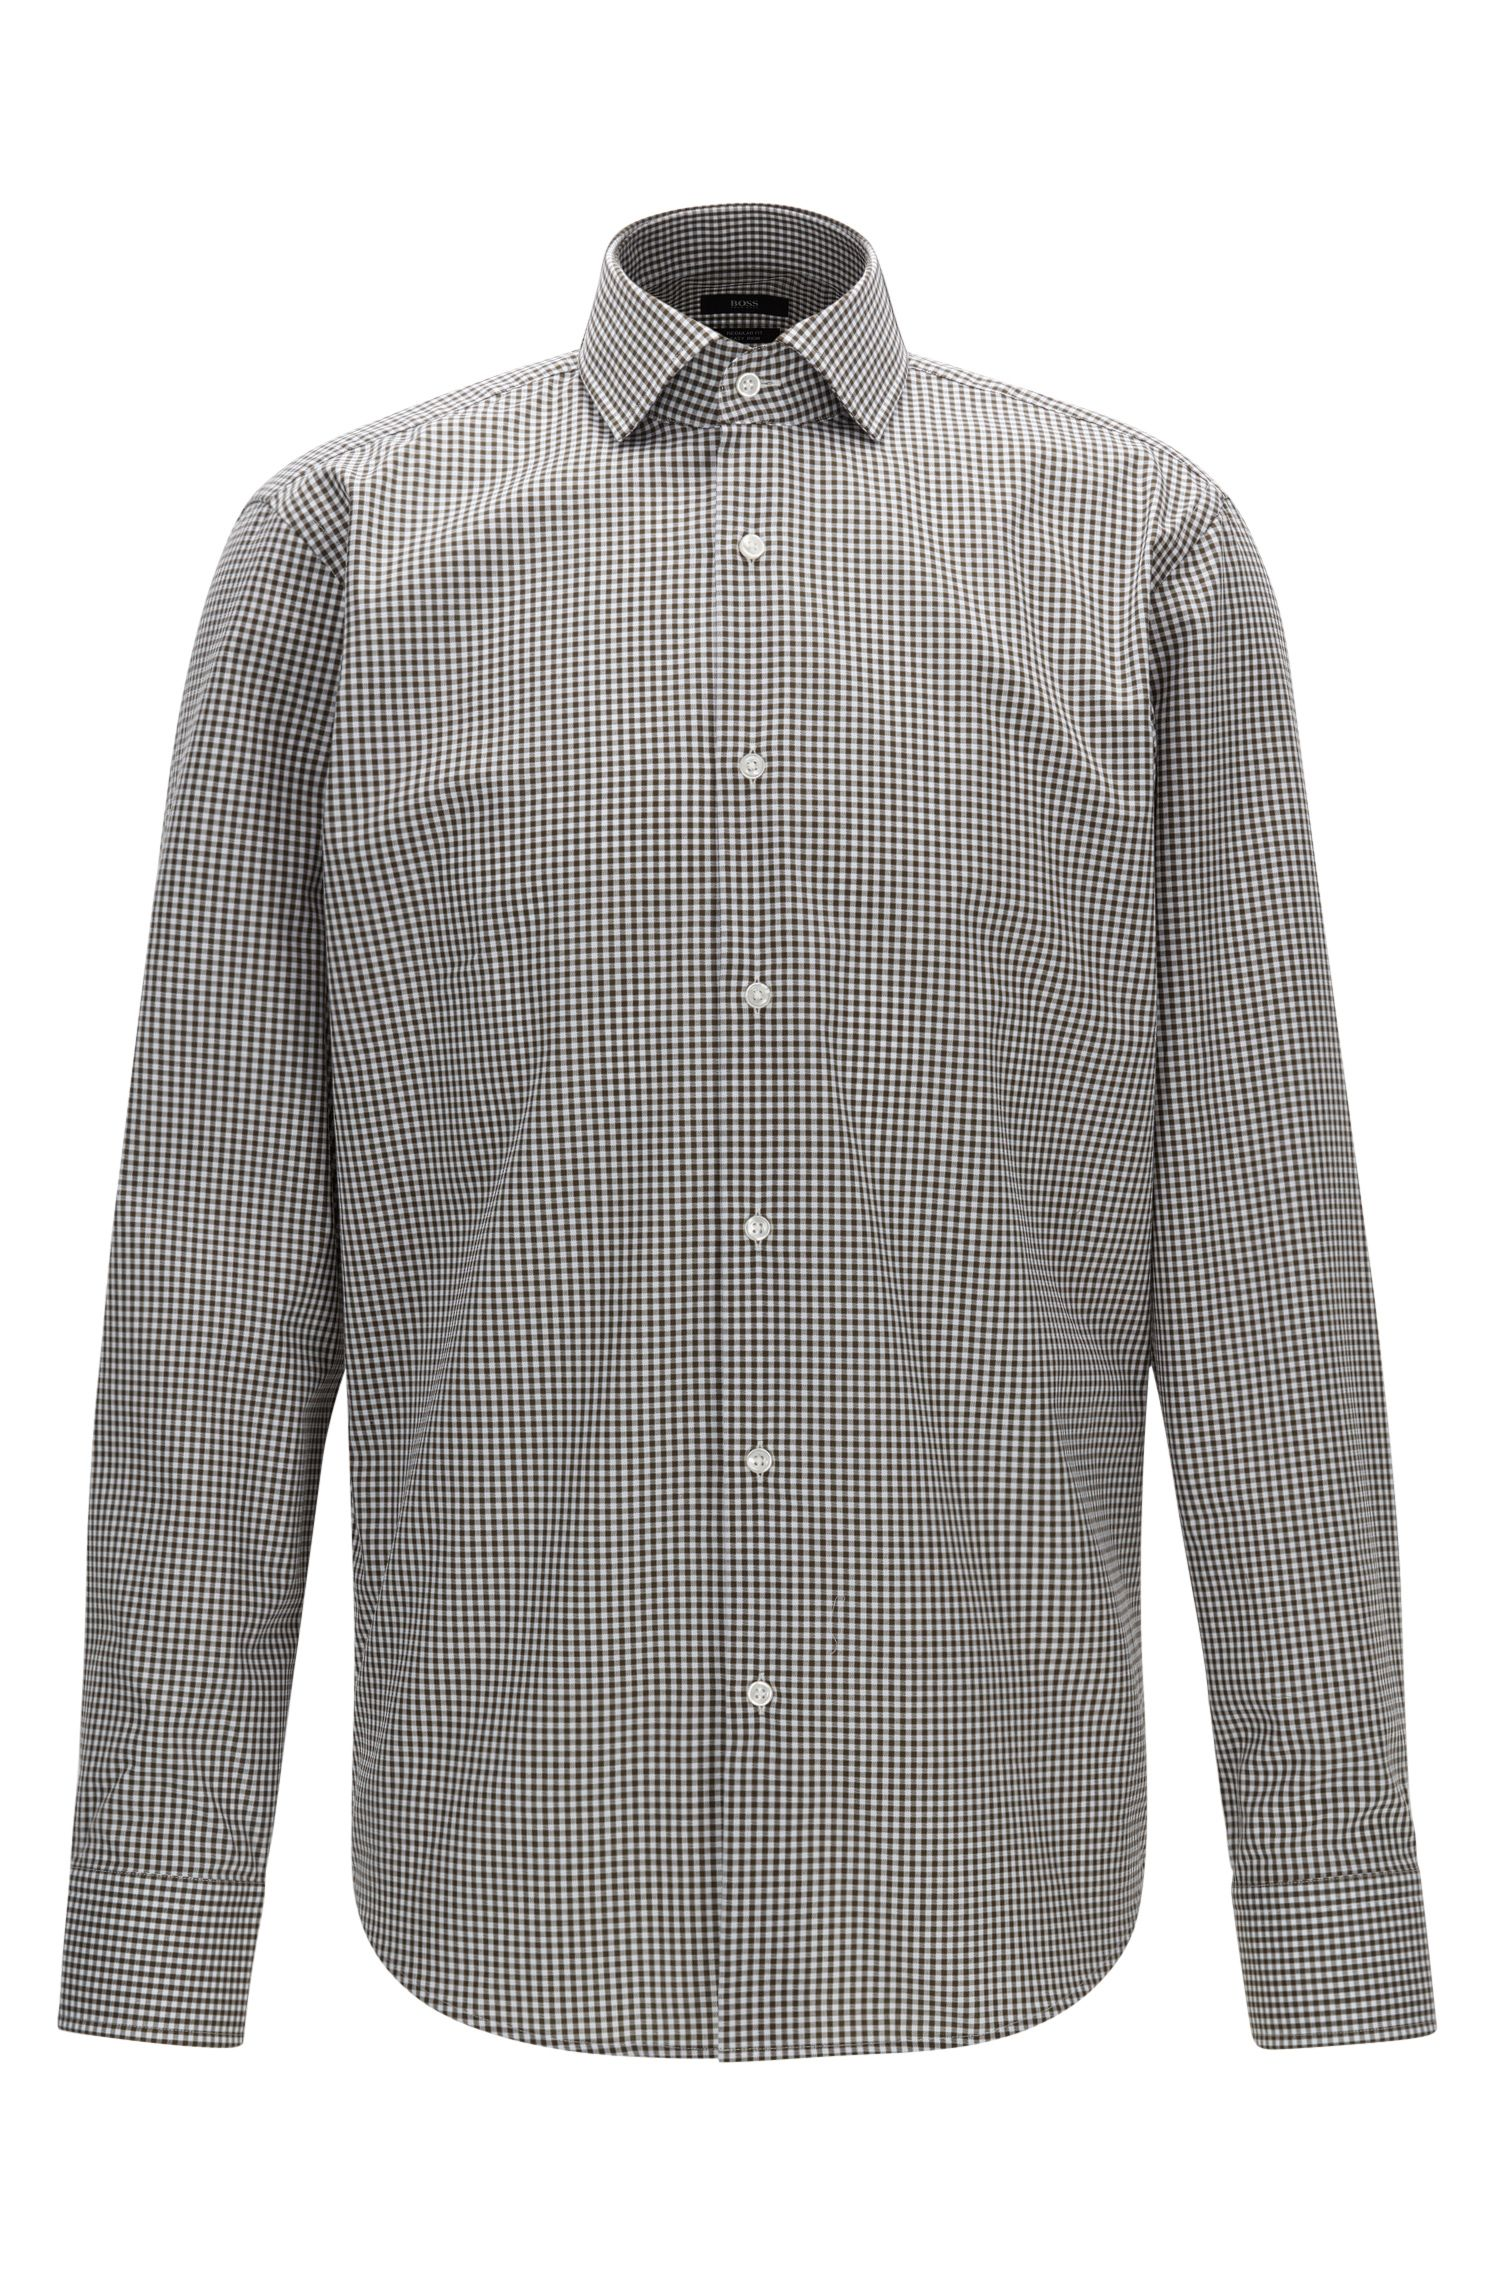 Camicia regular fit in cotone a quadri Vichy facile da stirare